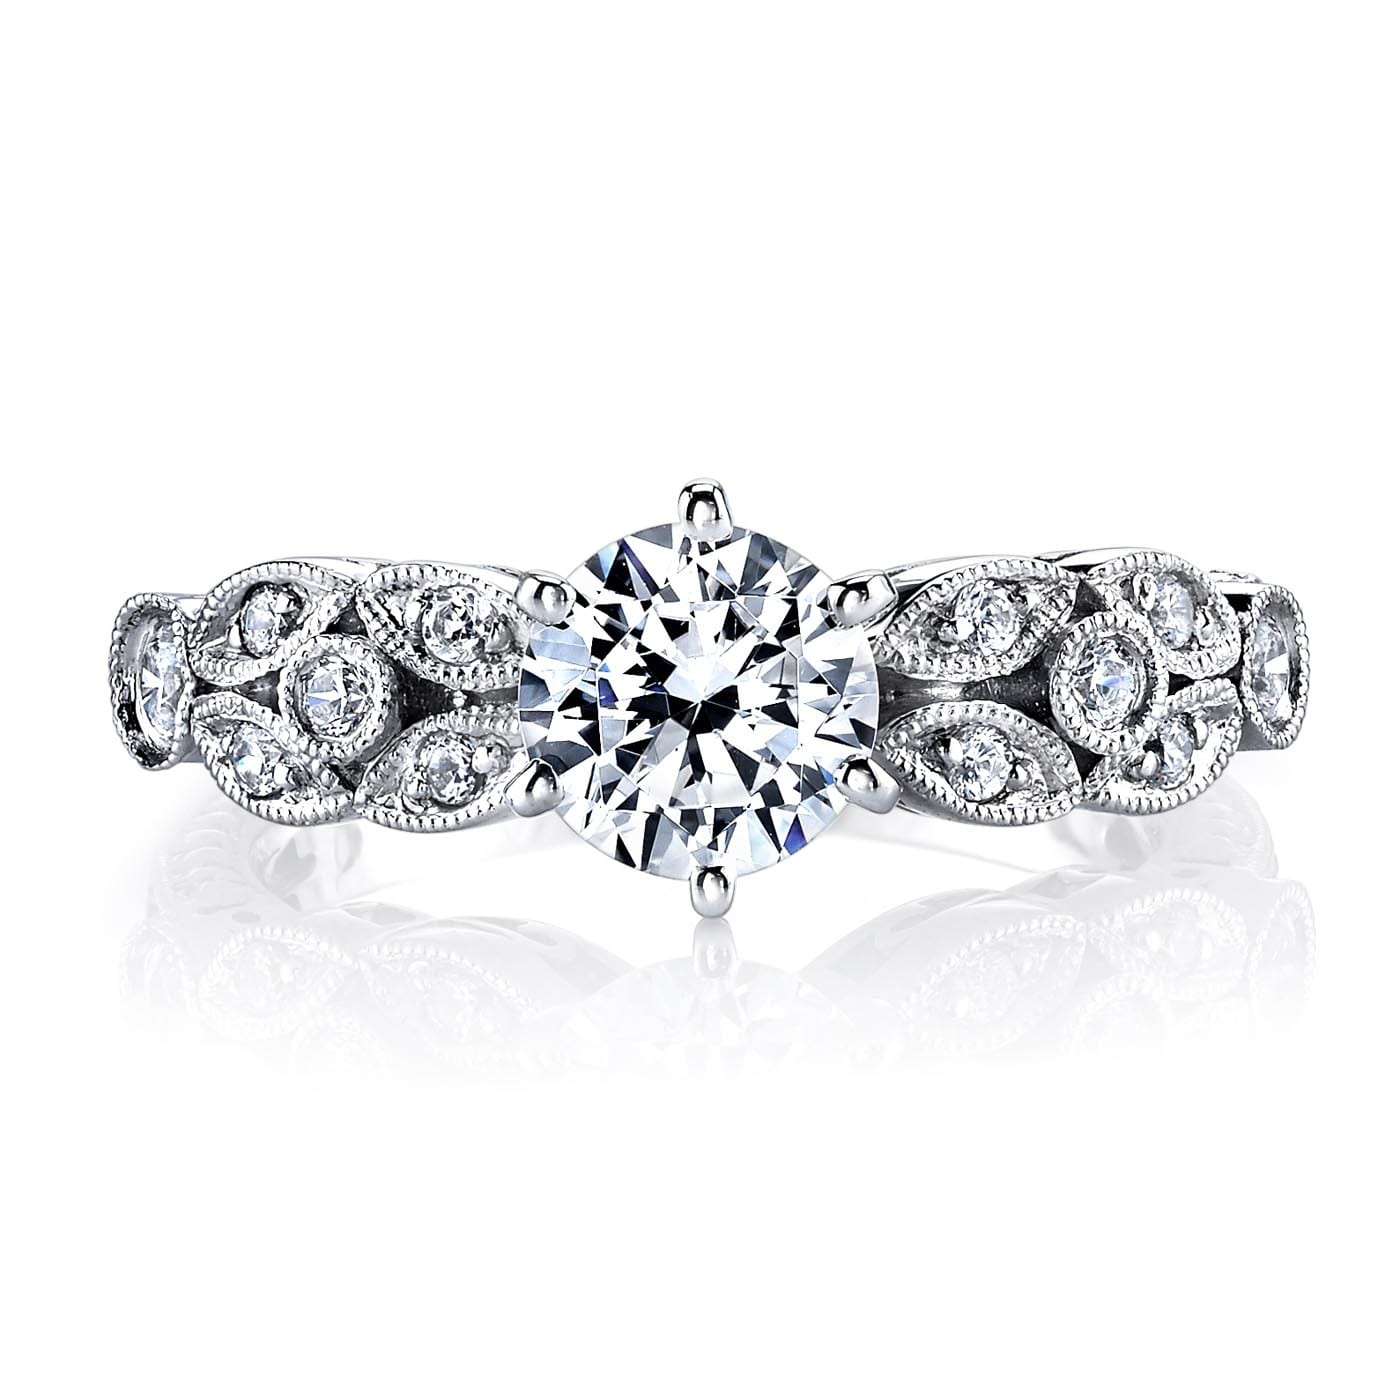 Floral Engagement RingStyle #: MARS 25779